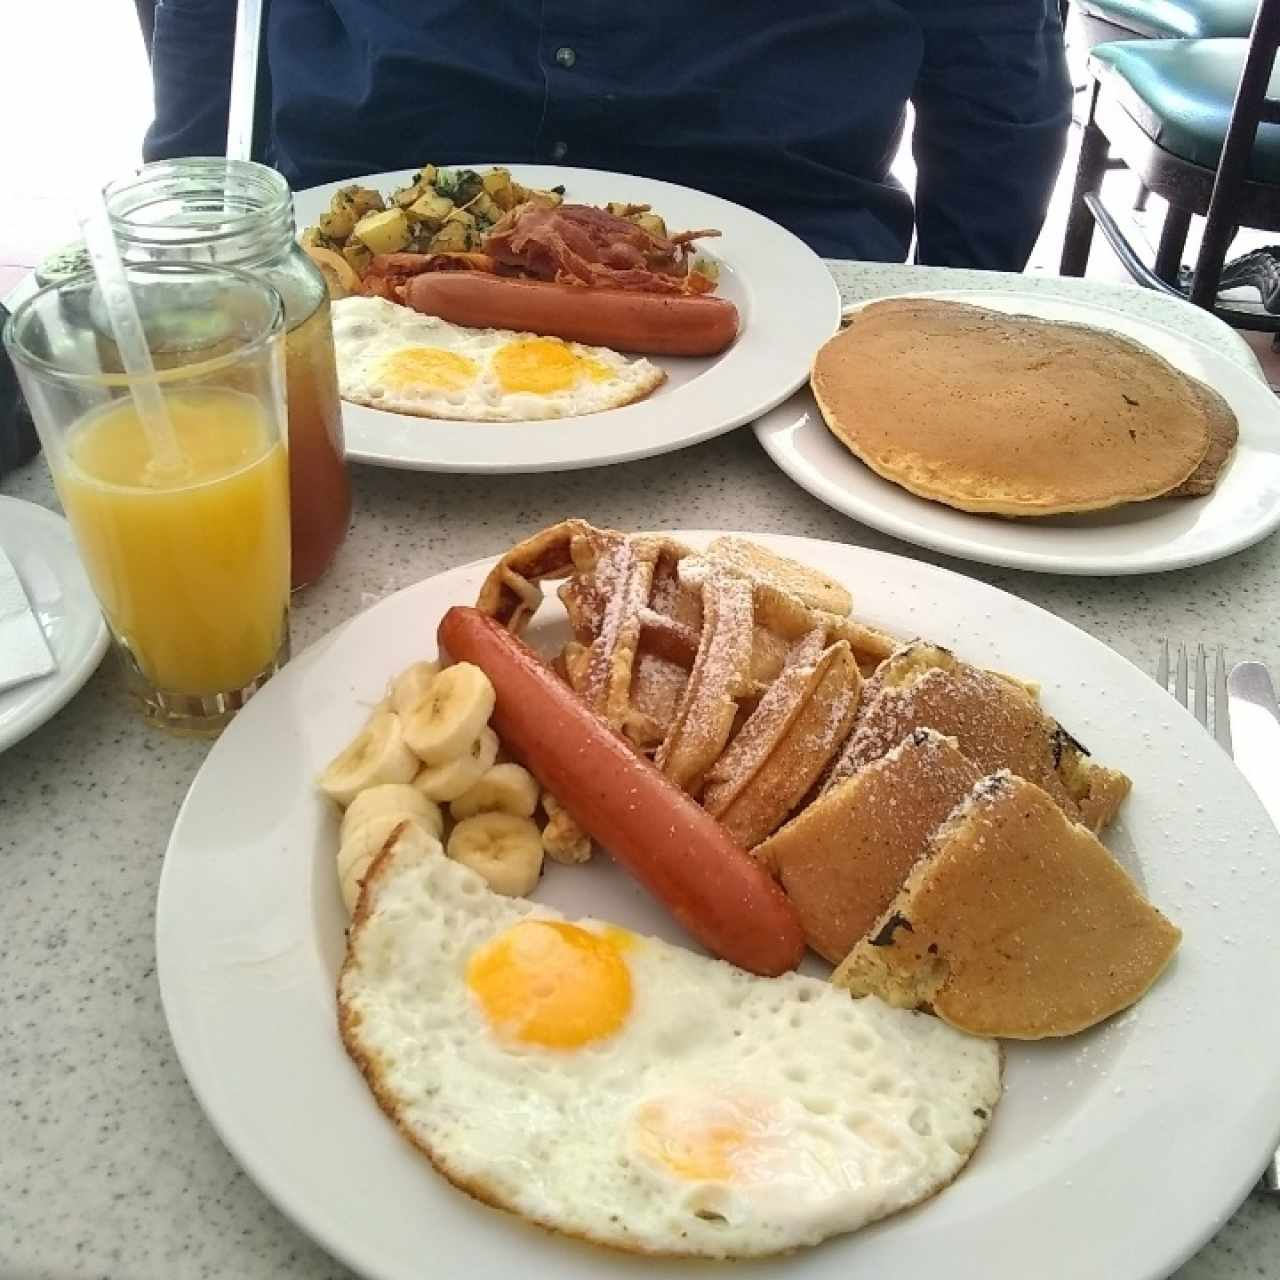 Arriba: Big Breakfast. Abajo: Mix Breakfast